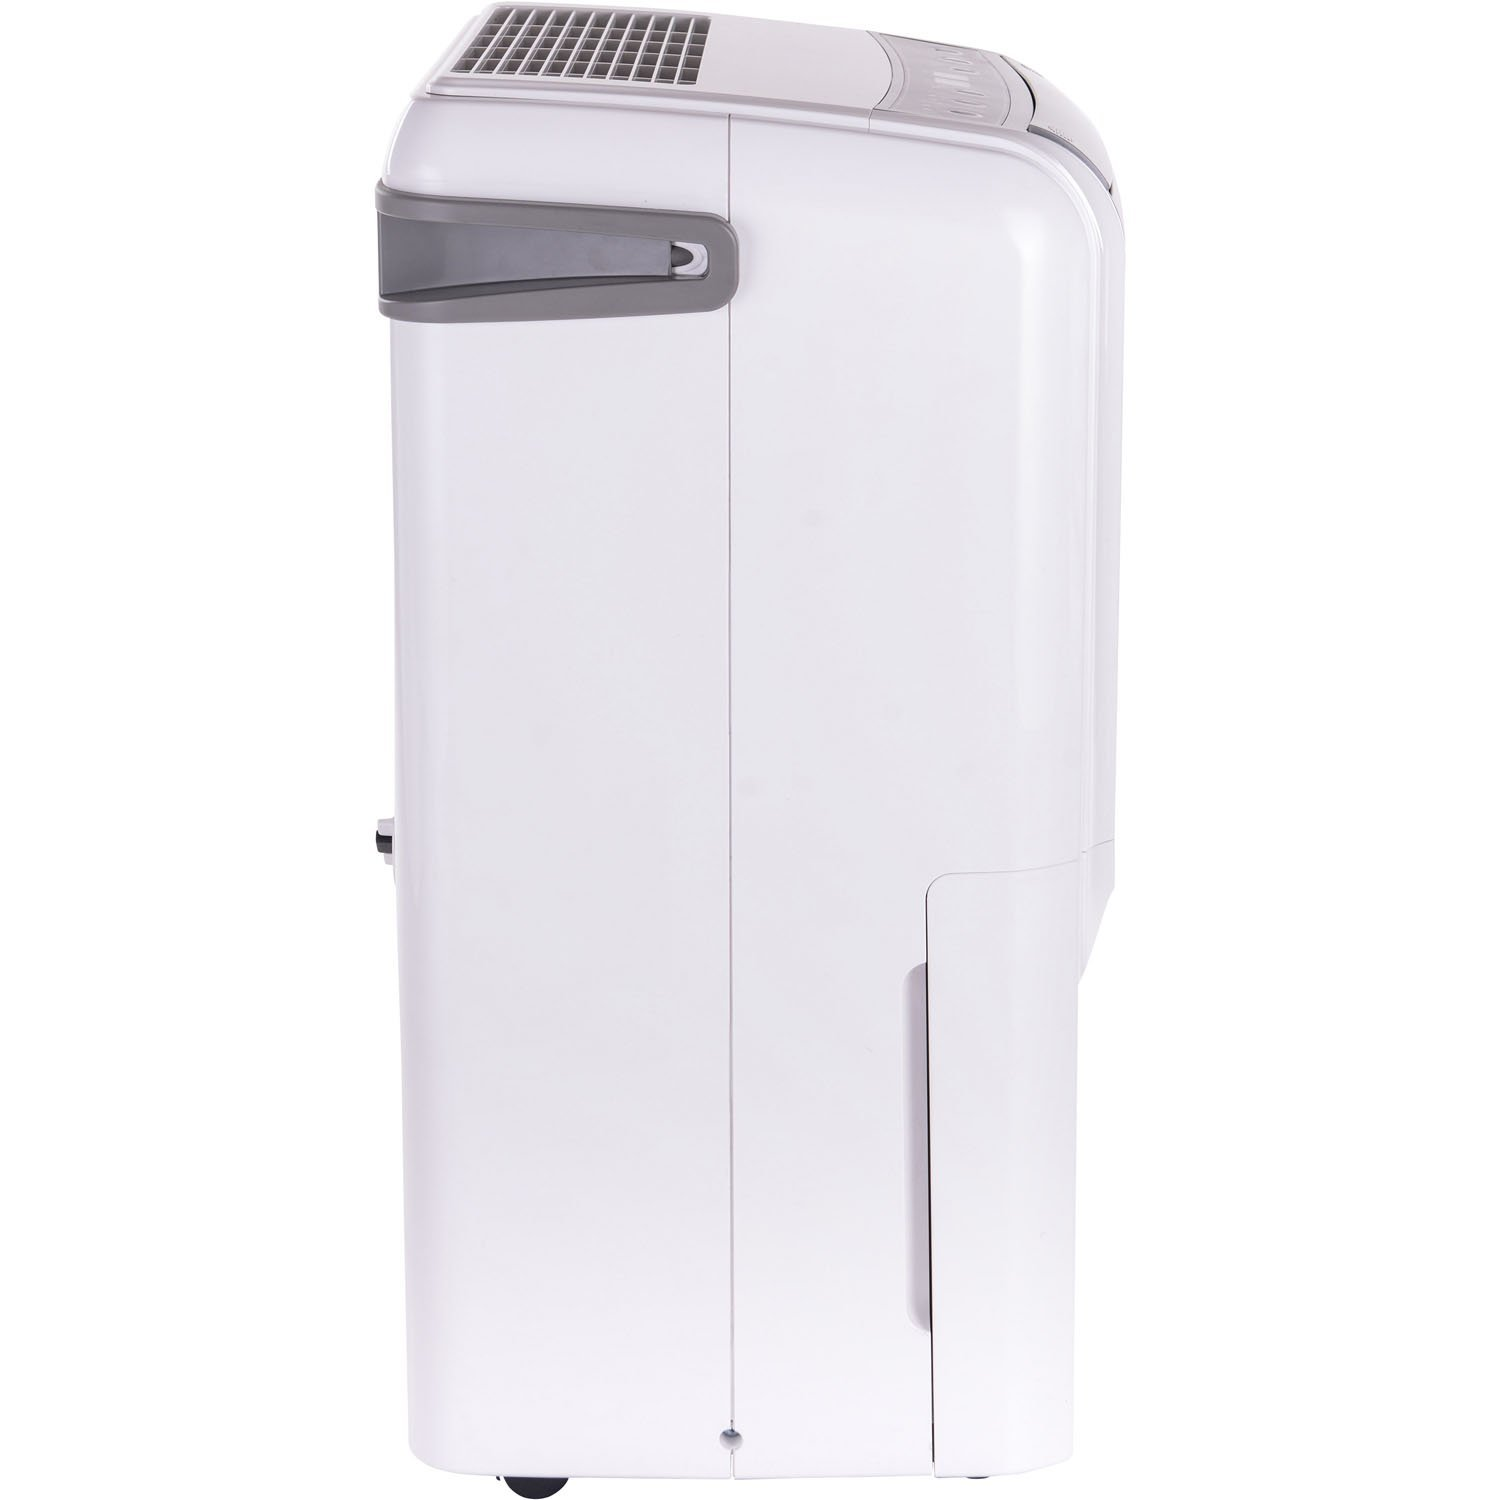 Honeywell DH70W 70 Pint Dehumidifier Energy Star Certified  #615774